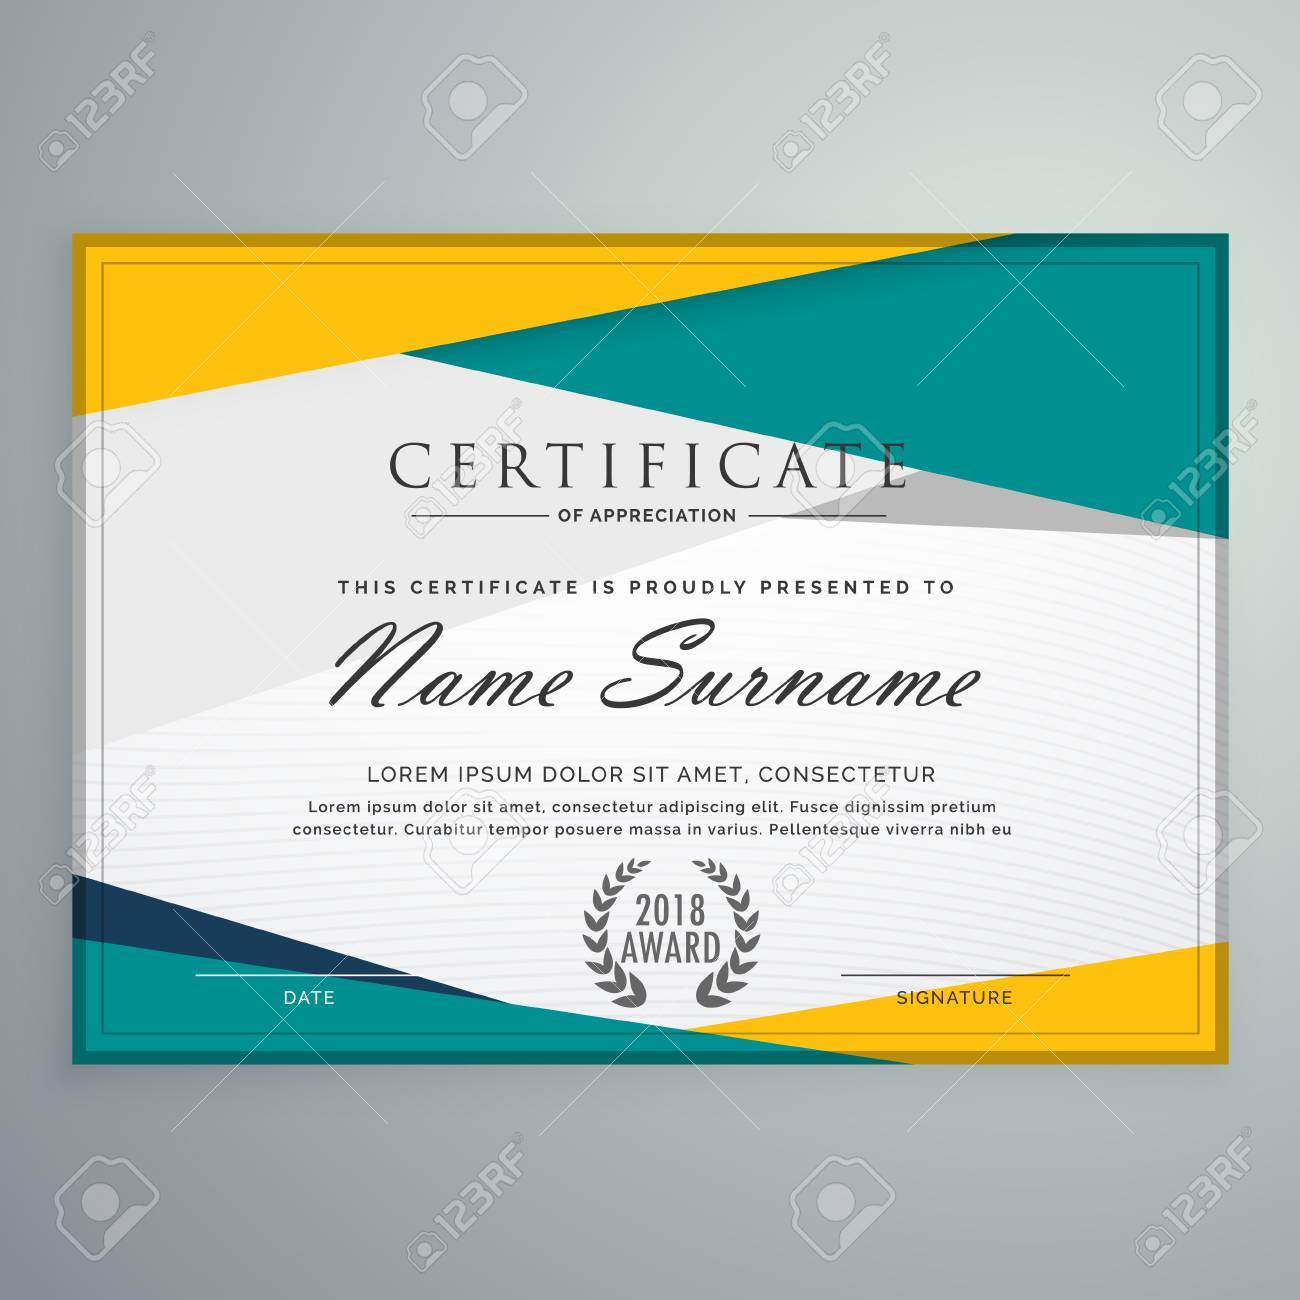 Abstract Geometric Certificate Template Design Royalty Free Cliparts ...